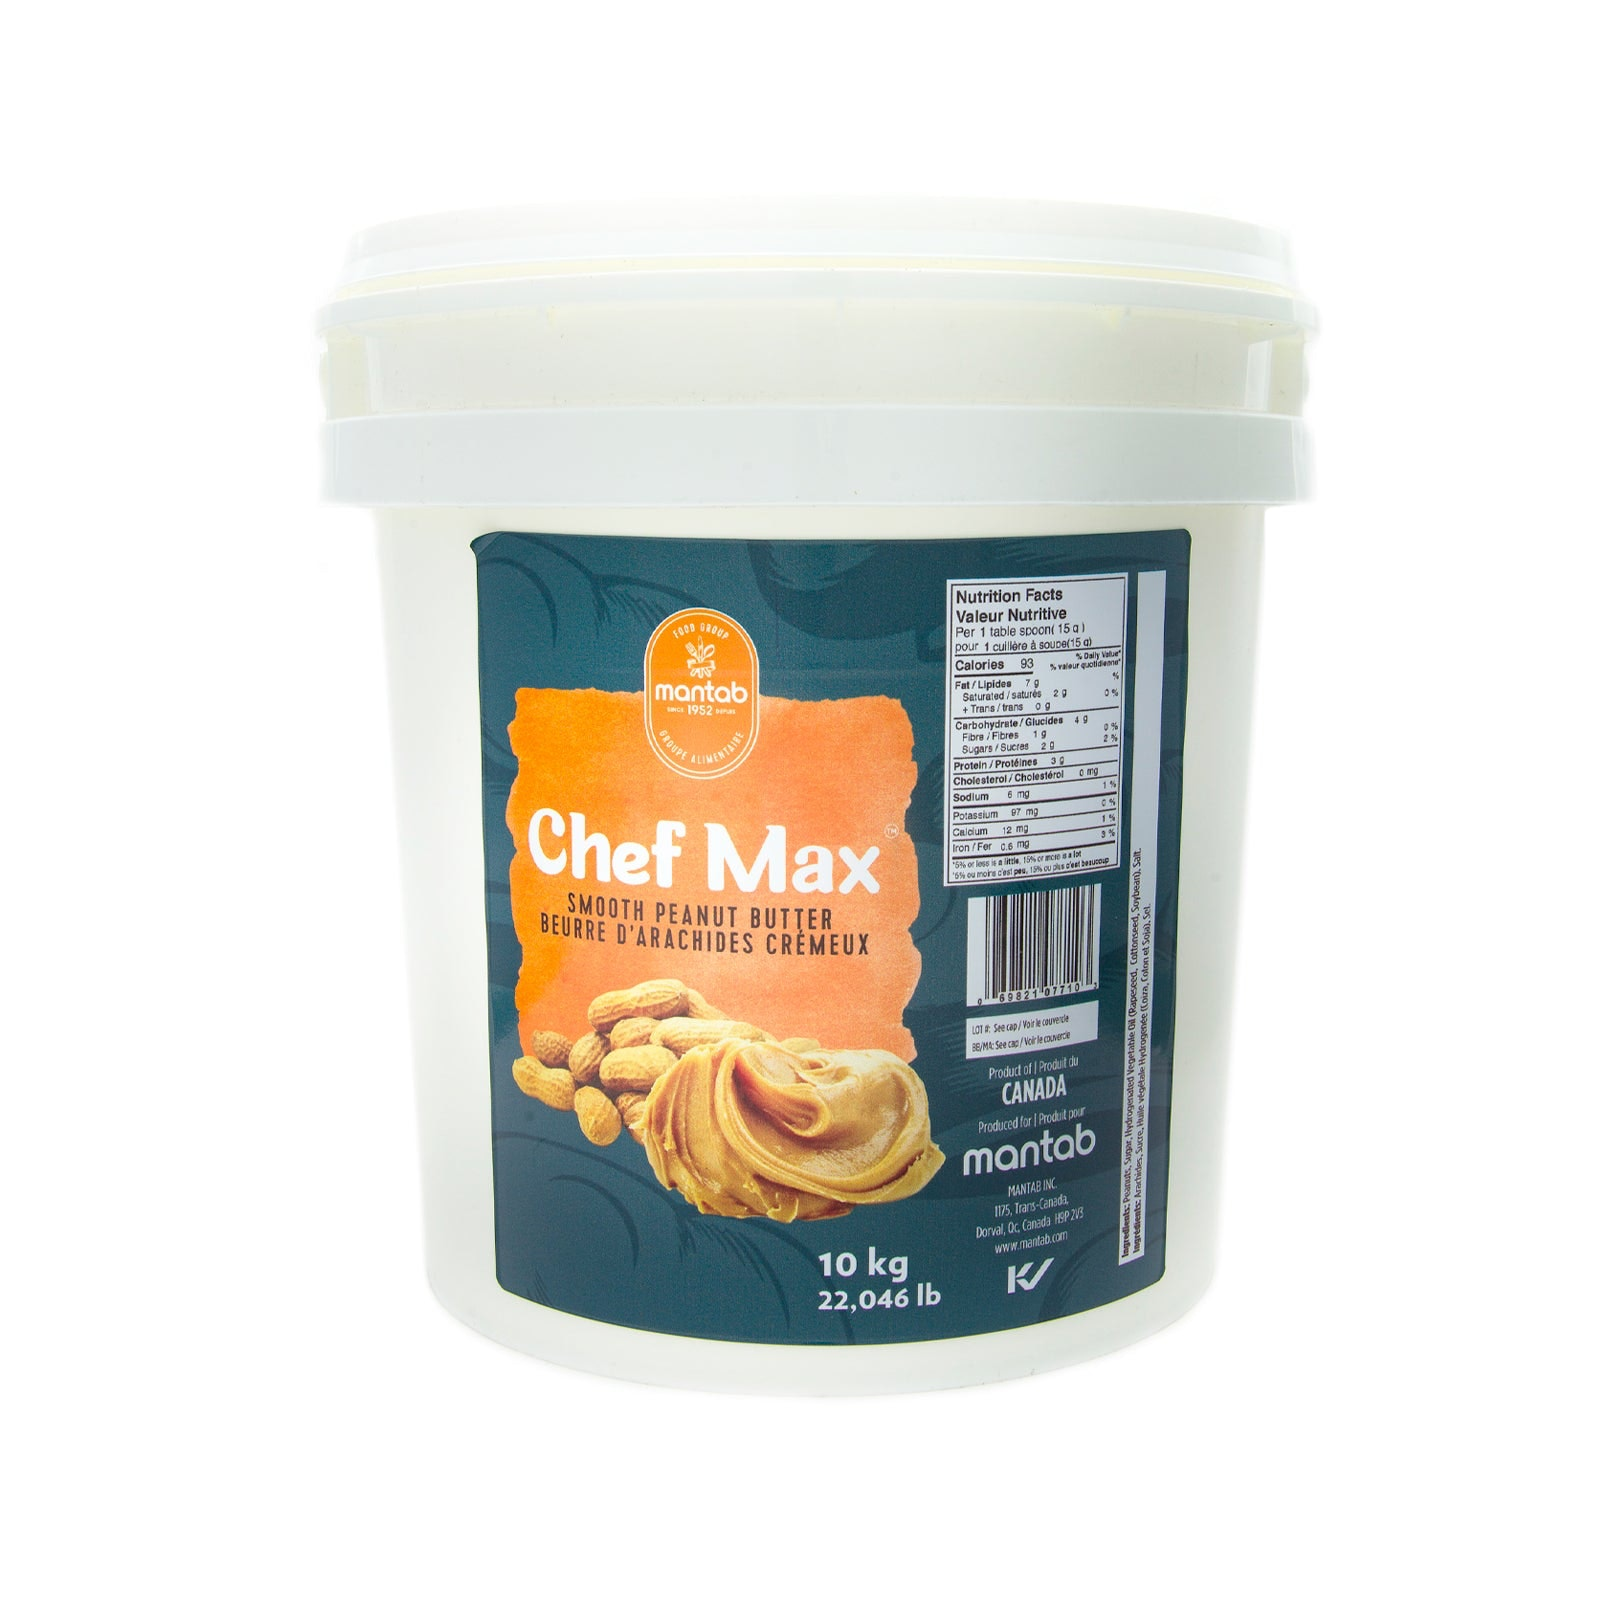 CHEF MAX Peanut butter (smooth)